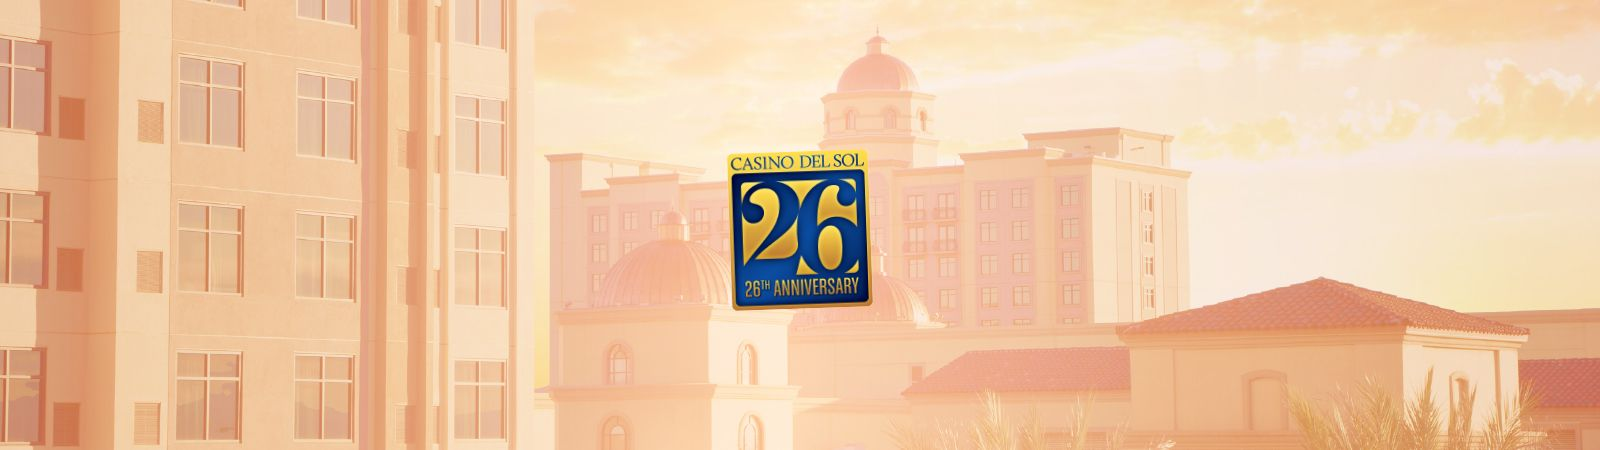 26th Anniversary Dining specials at Casino Del SOl